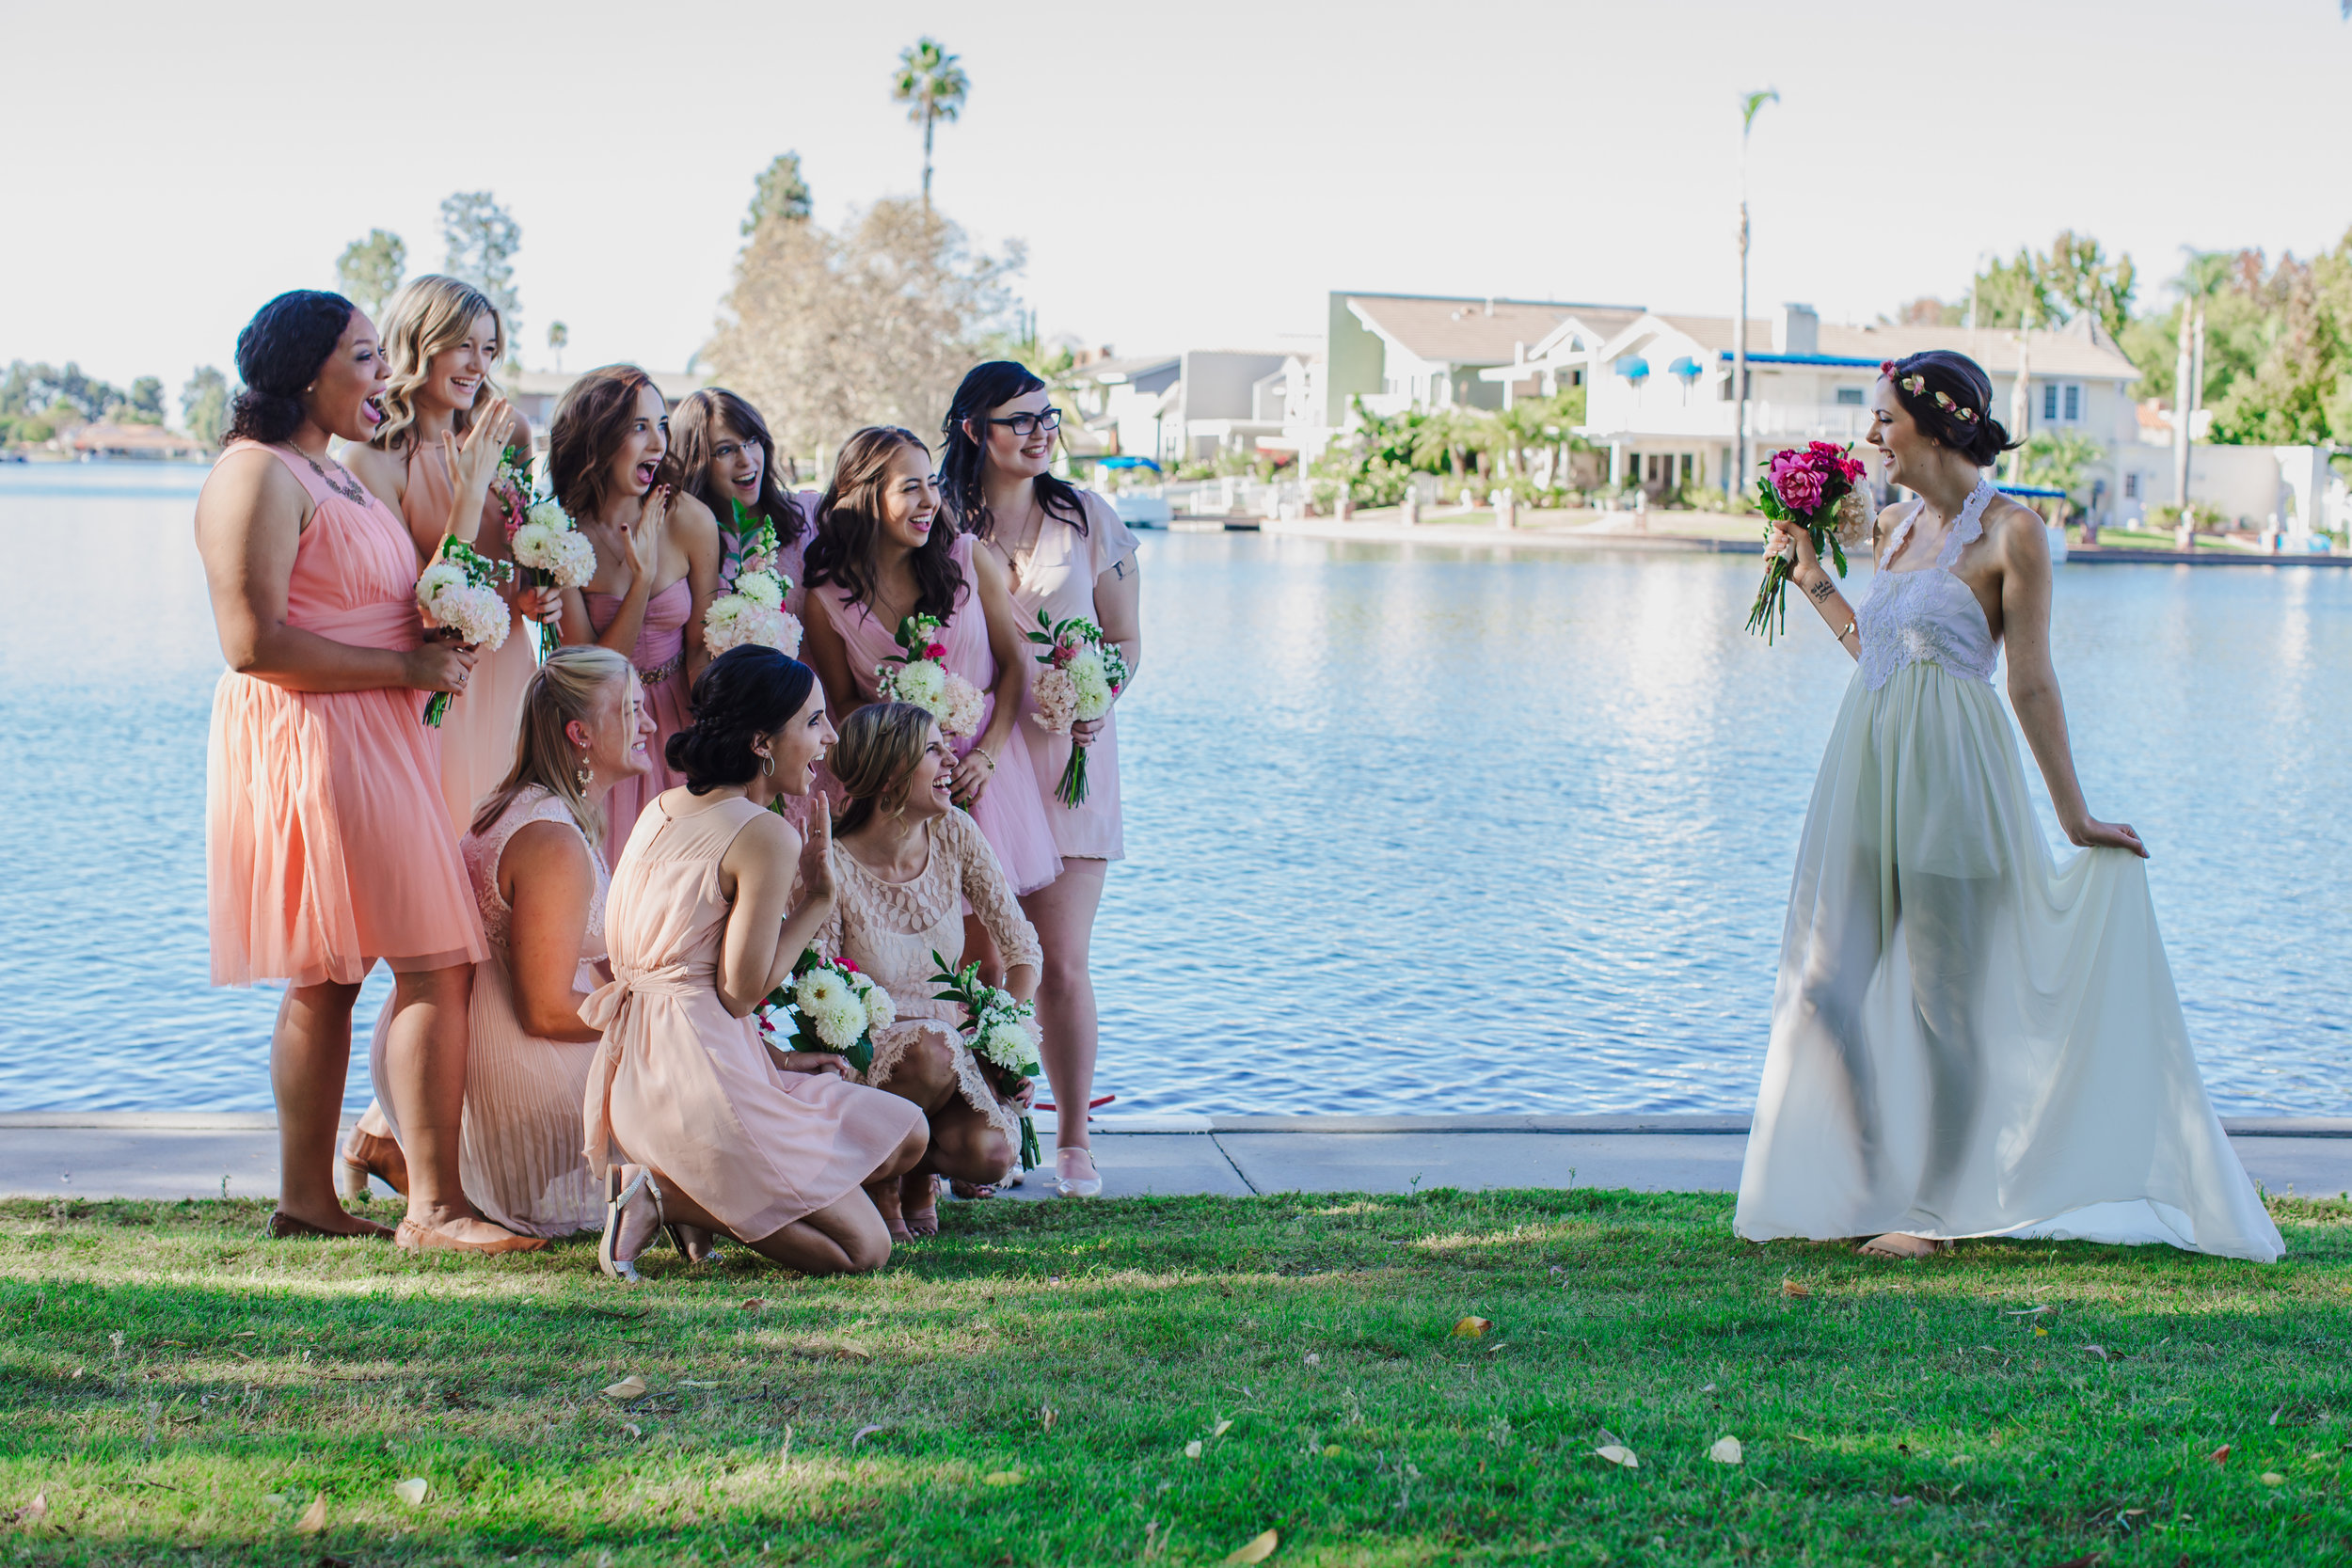 20141024-DePartee-Wedding-APavone-073.jpg